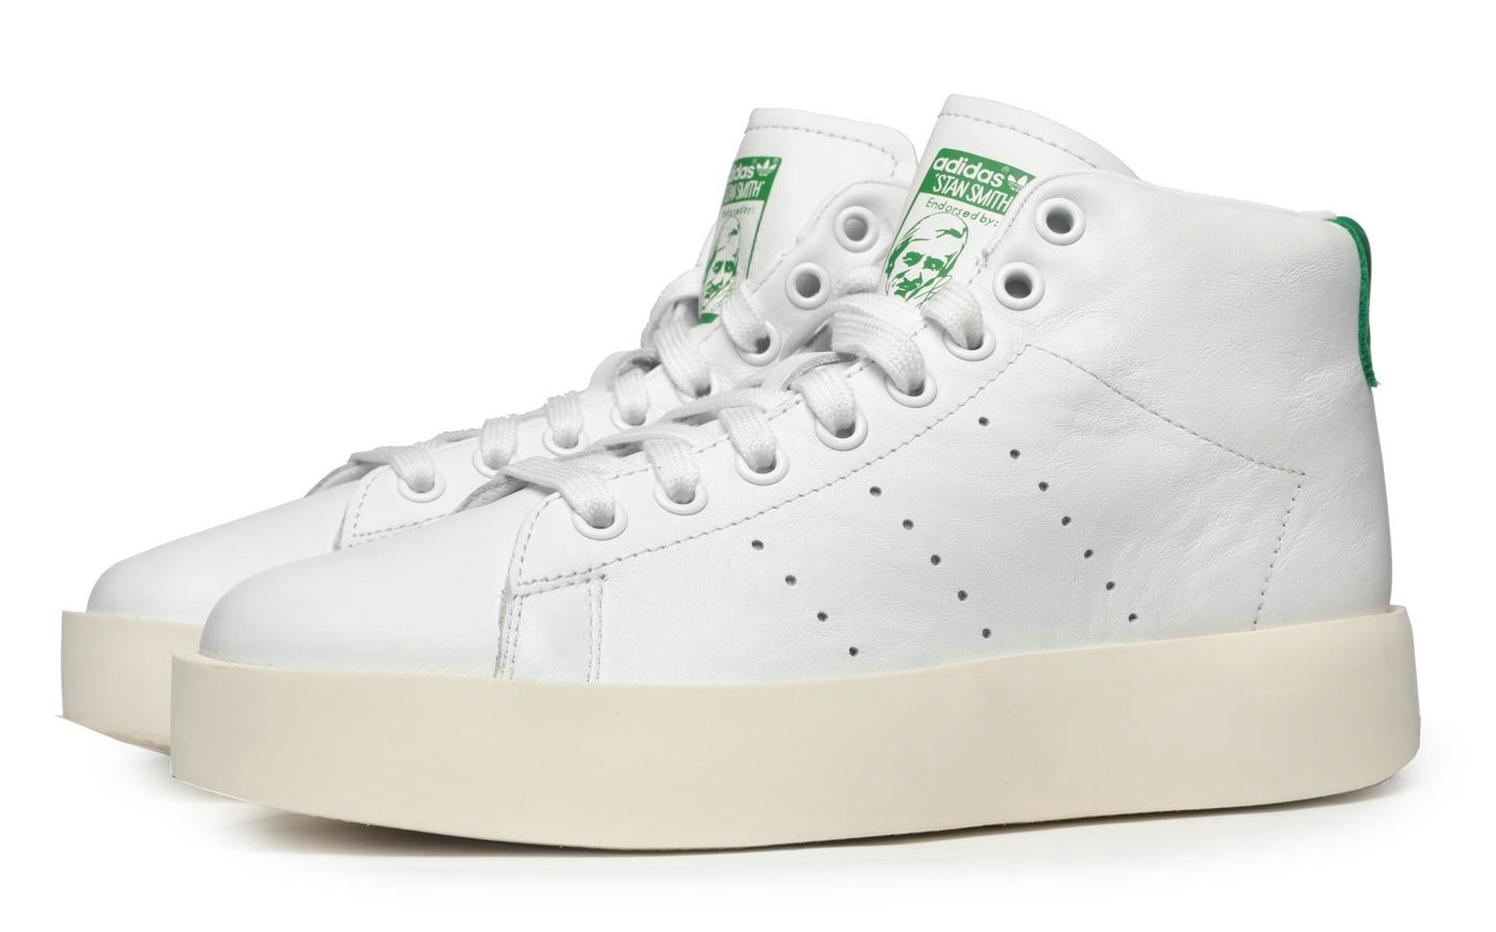 new product 7d175 bd16b ADIDAS ORIGINALS STAN SMITH BOLD MID WHITE LEATHER